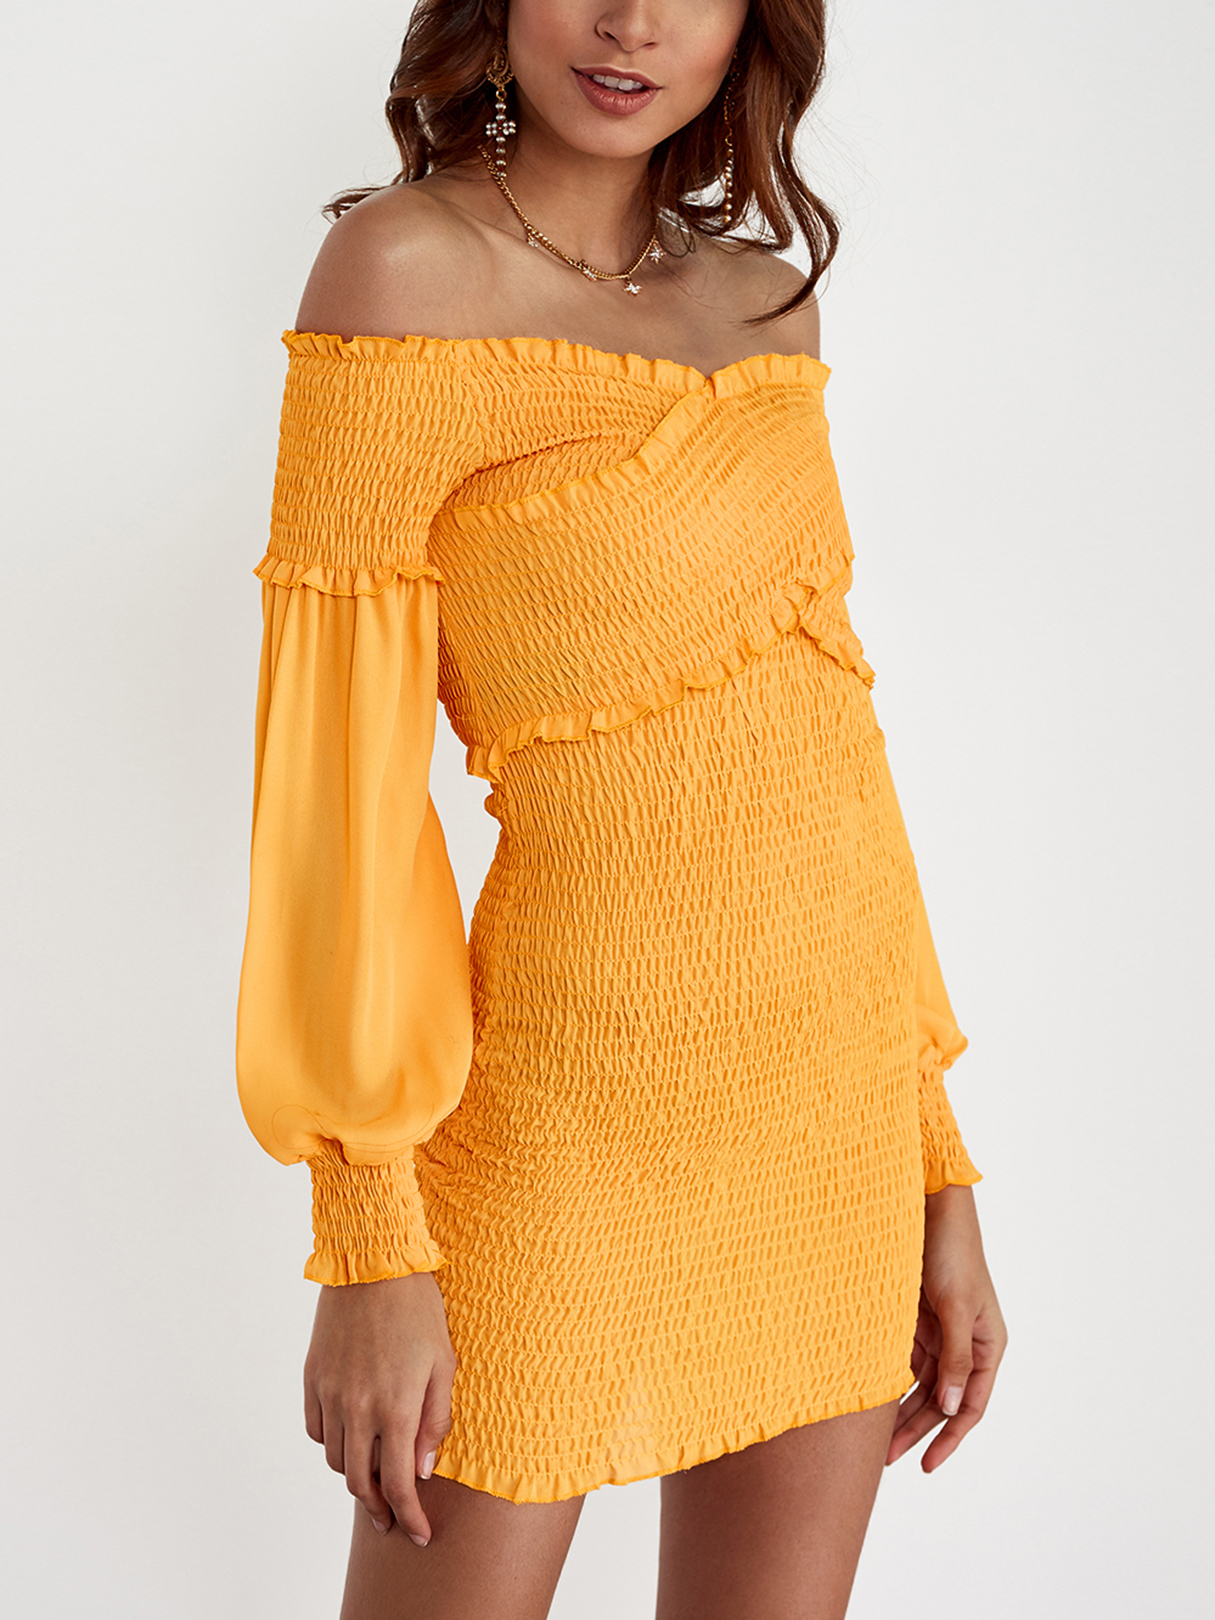 Yellow Off-The-Shoulder Cross Front Shirred Bodice Mini Dress cute off the shoulder lemon dress for women